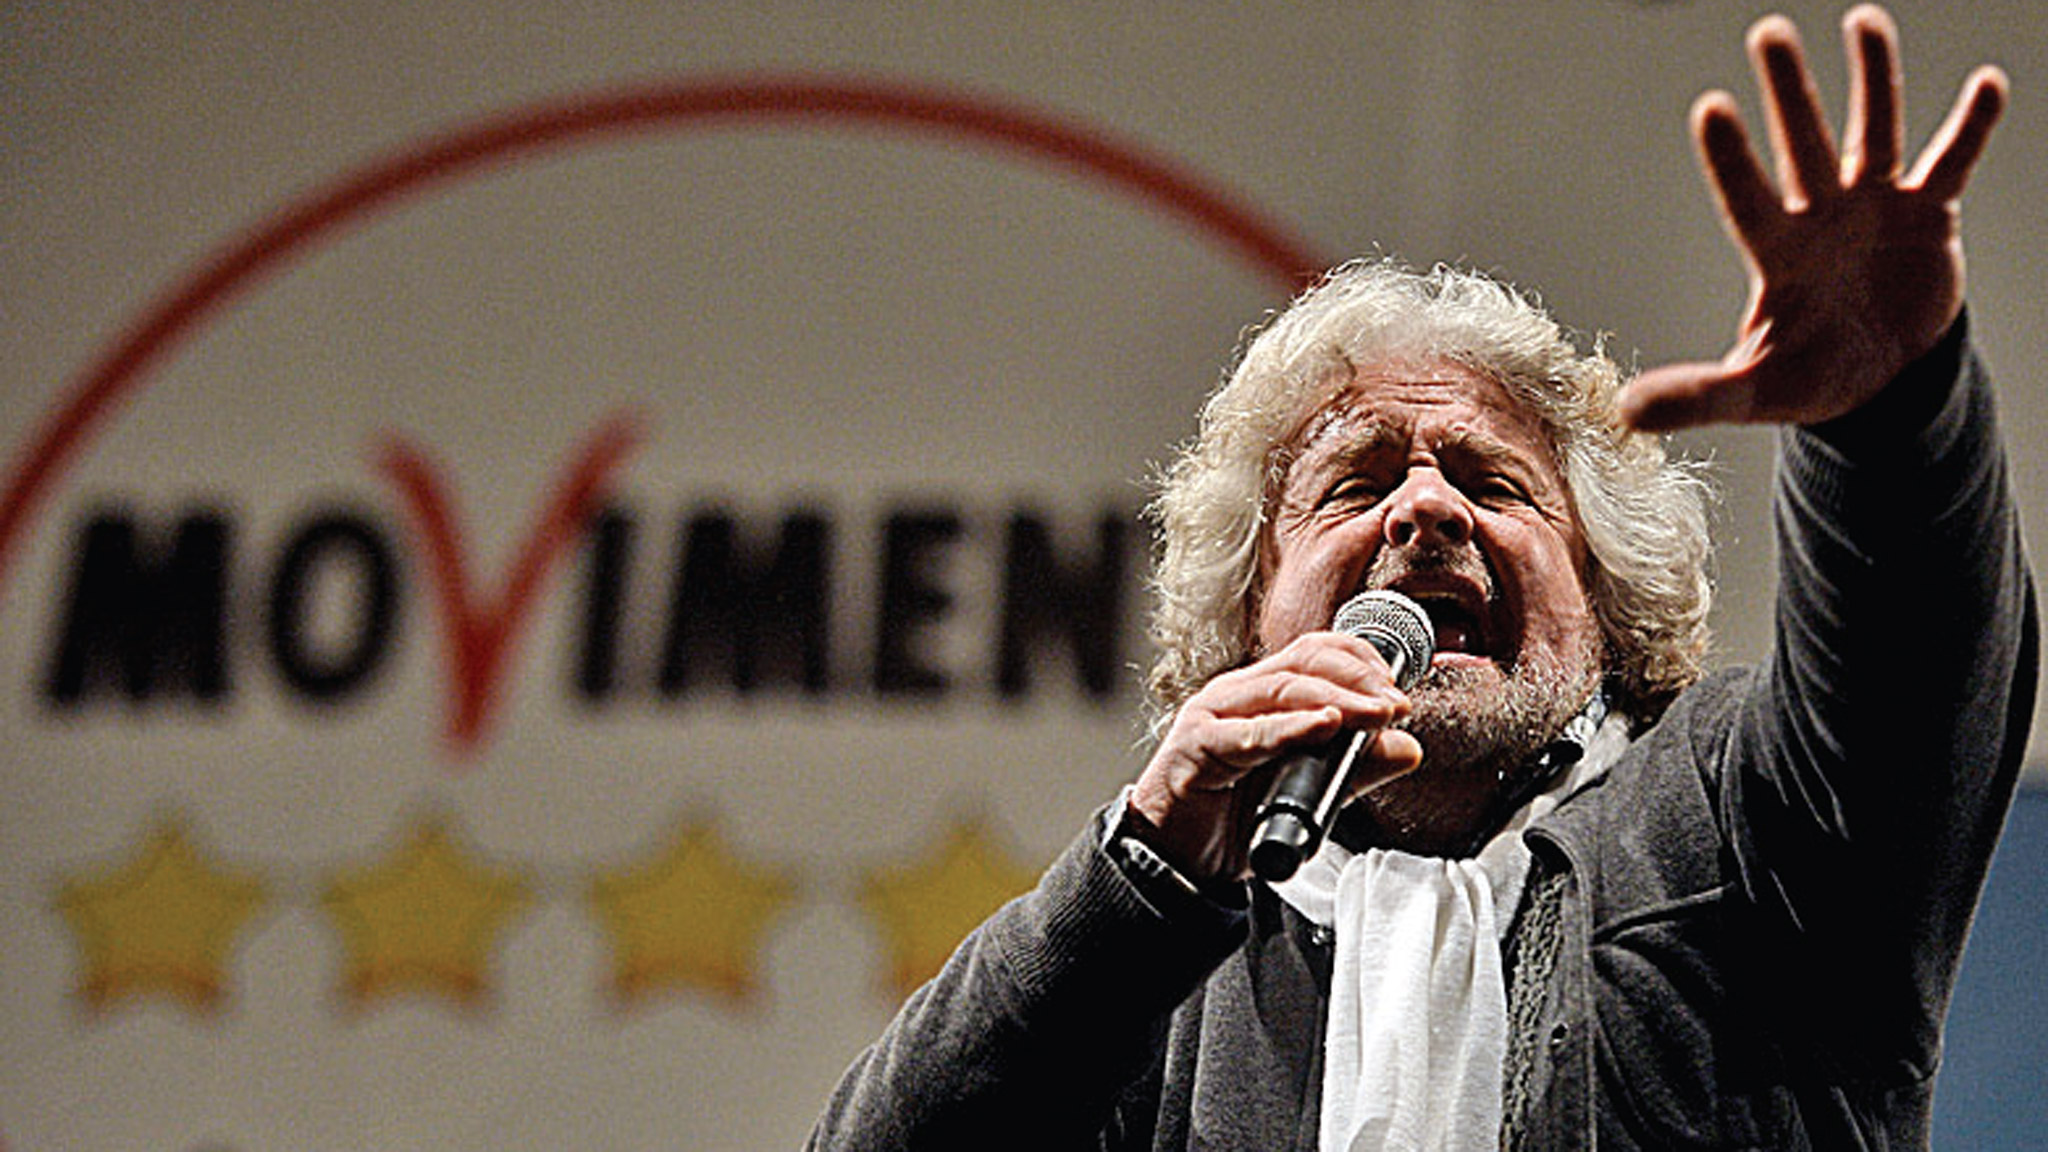 italy-five-star-movement-beppe-grillo